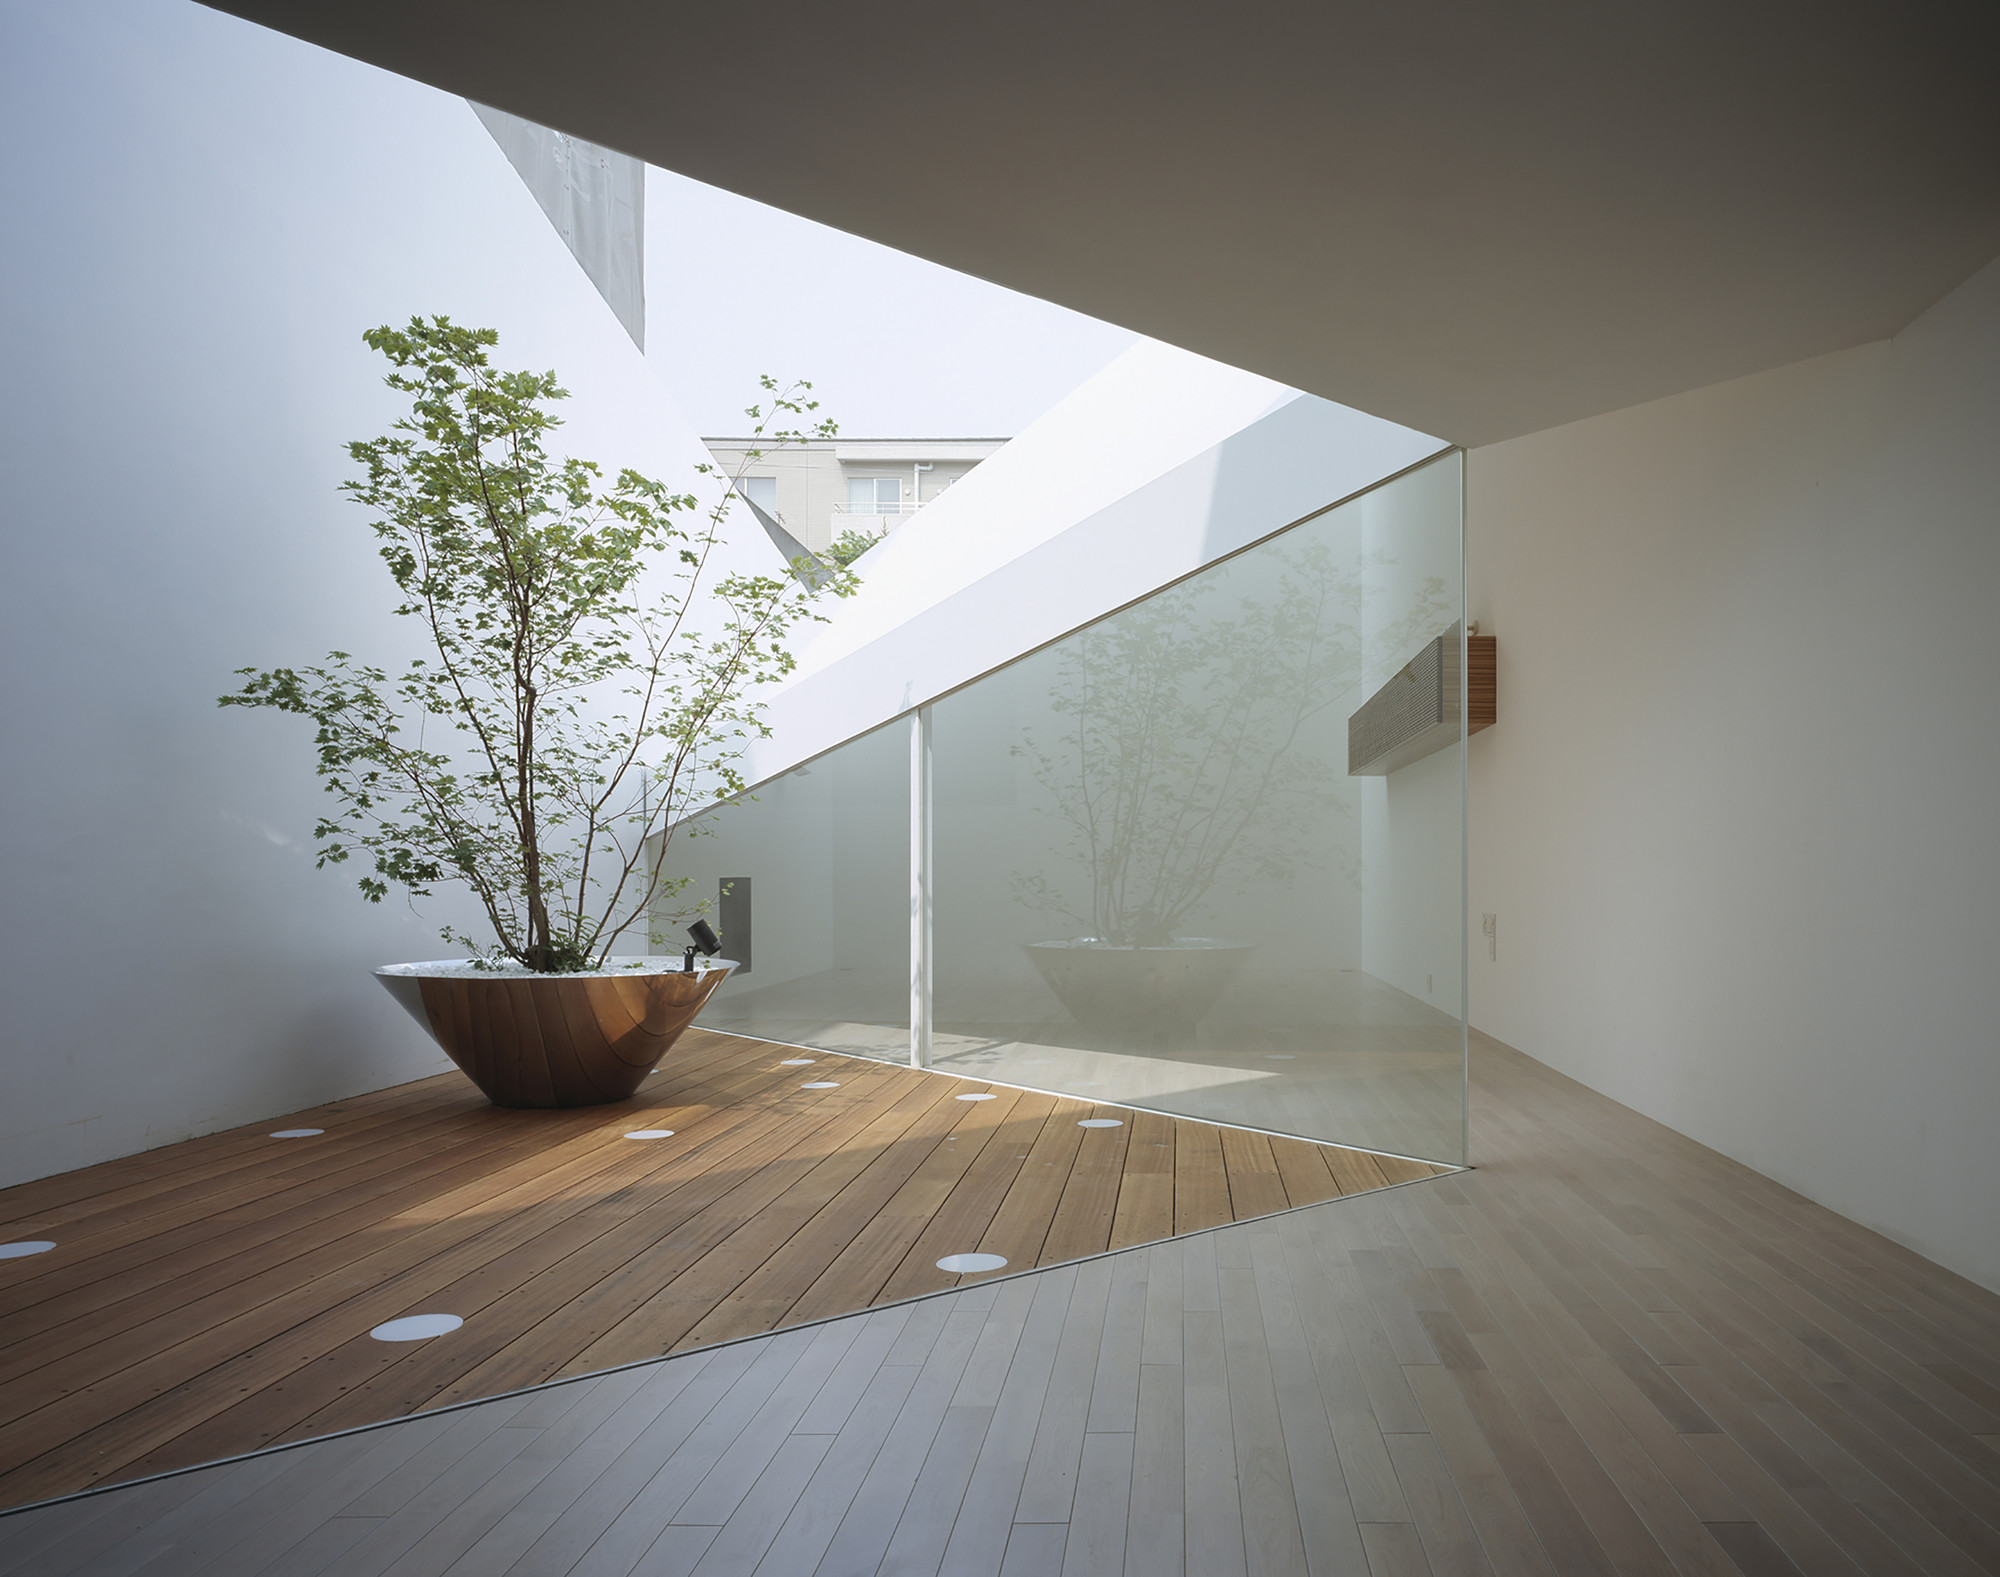 A Hill on a House / Yuko Nagayama & Associates, © Daici Ano